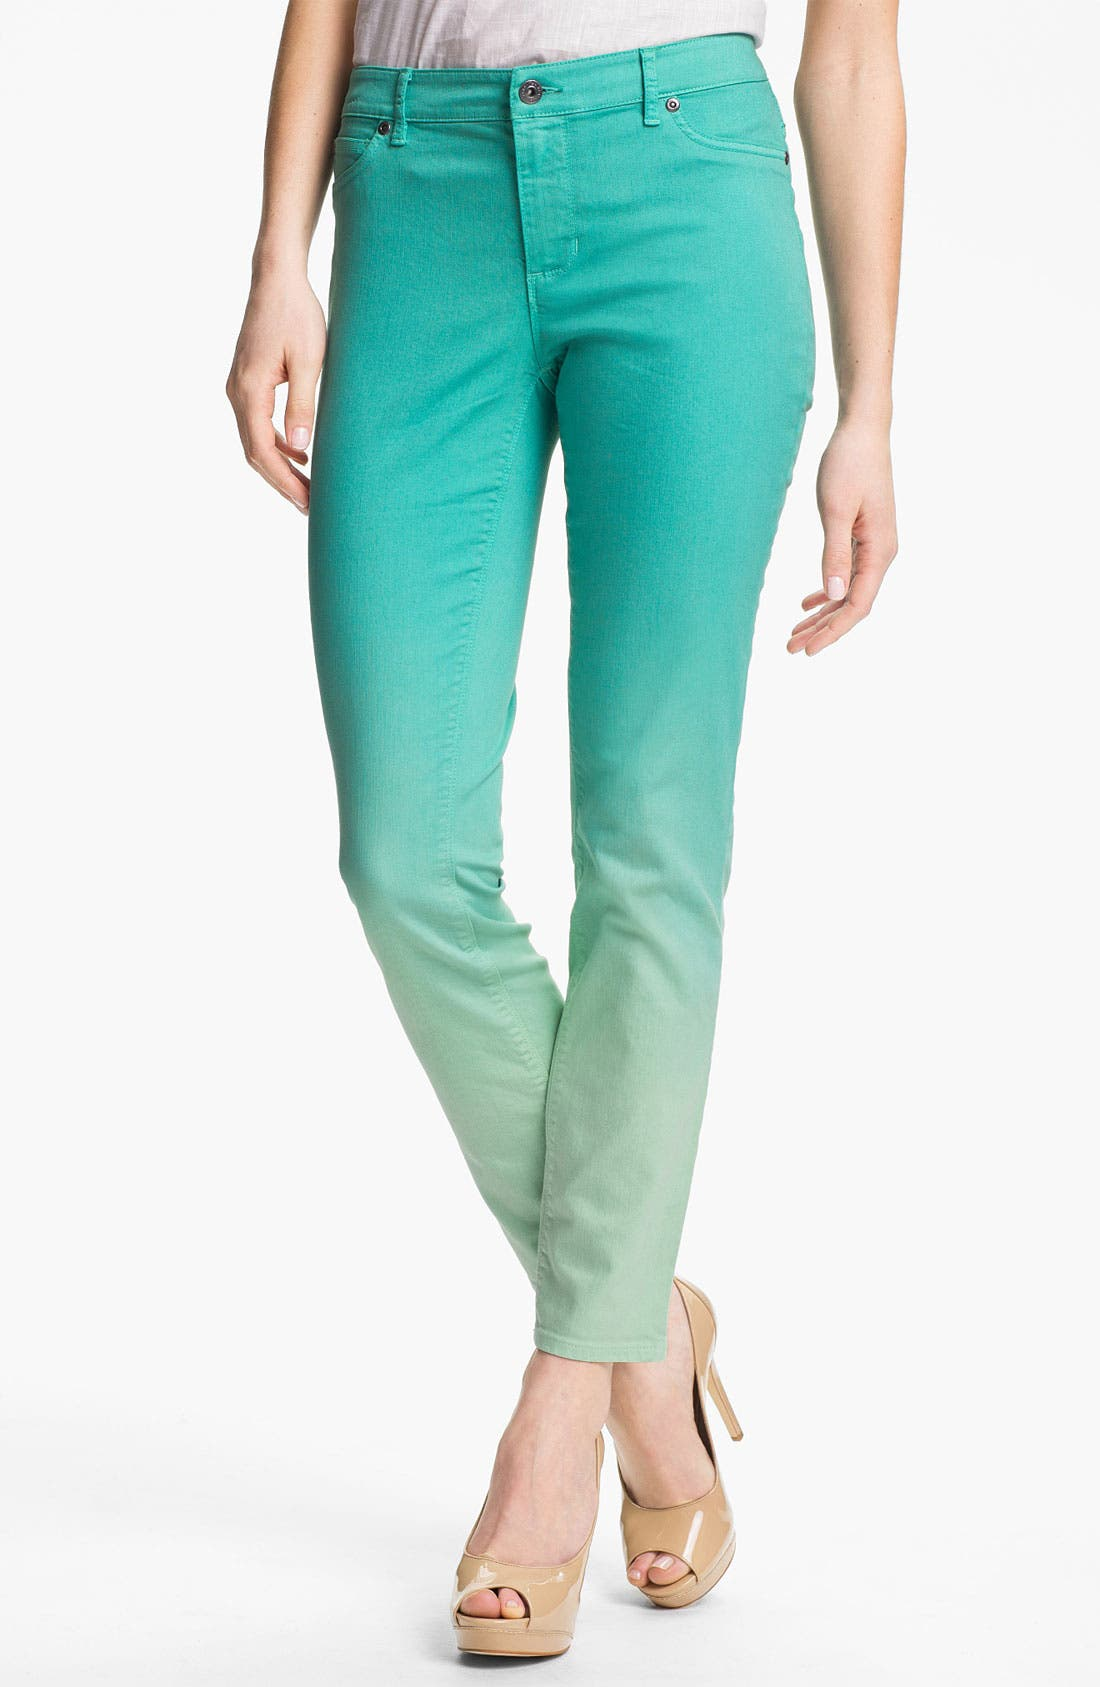 Main Image - Two by Vince Camuto Dip Dye Straight Leg Jeans